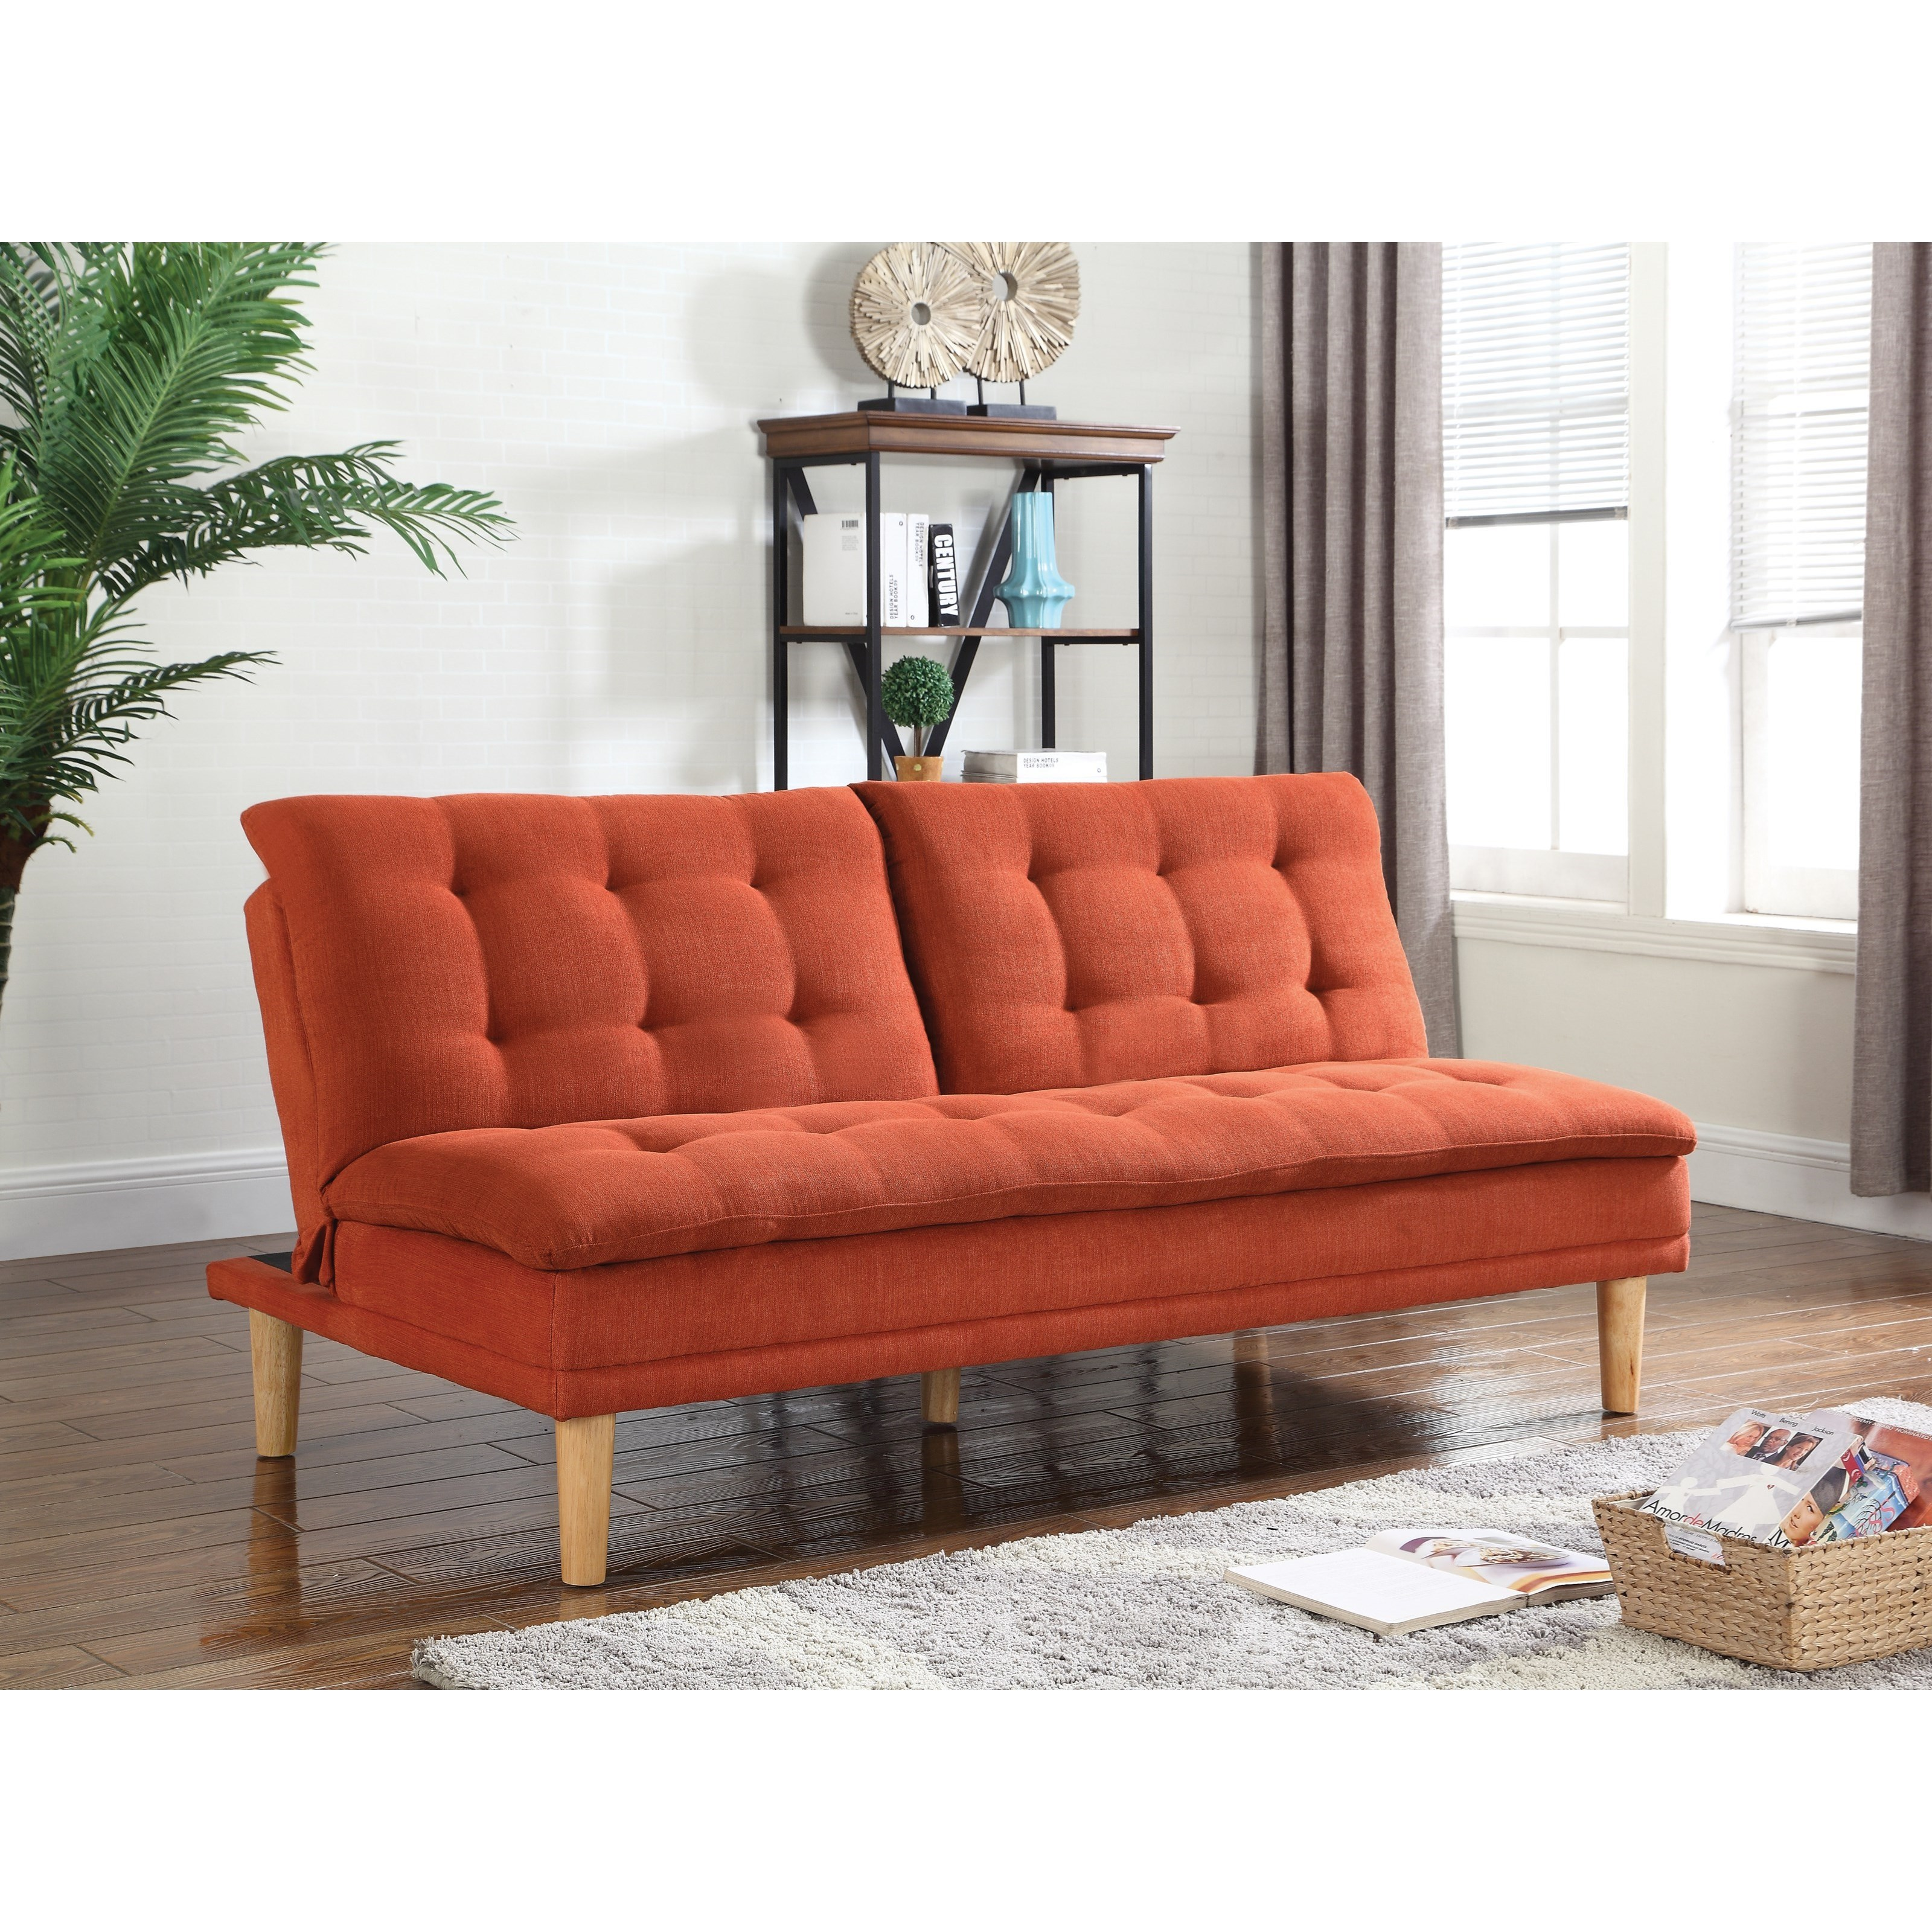 leather futon faux sofa shop beds armrests removable bed and with futons convertible